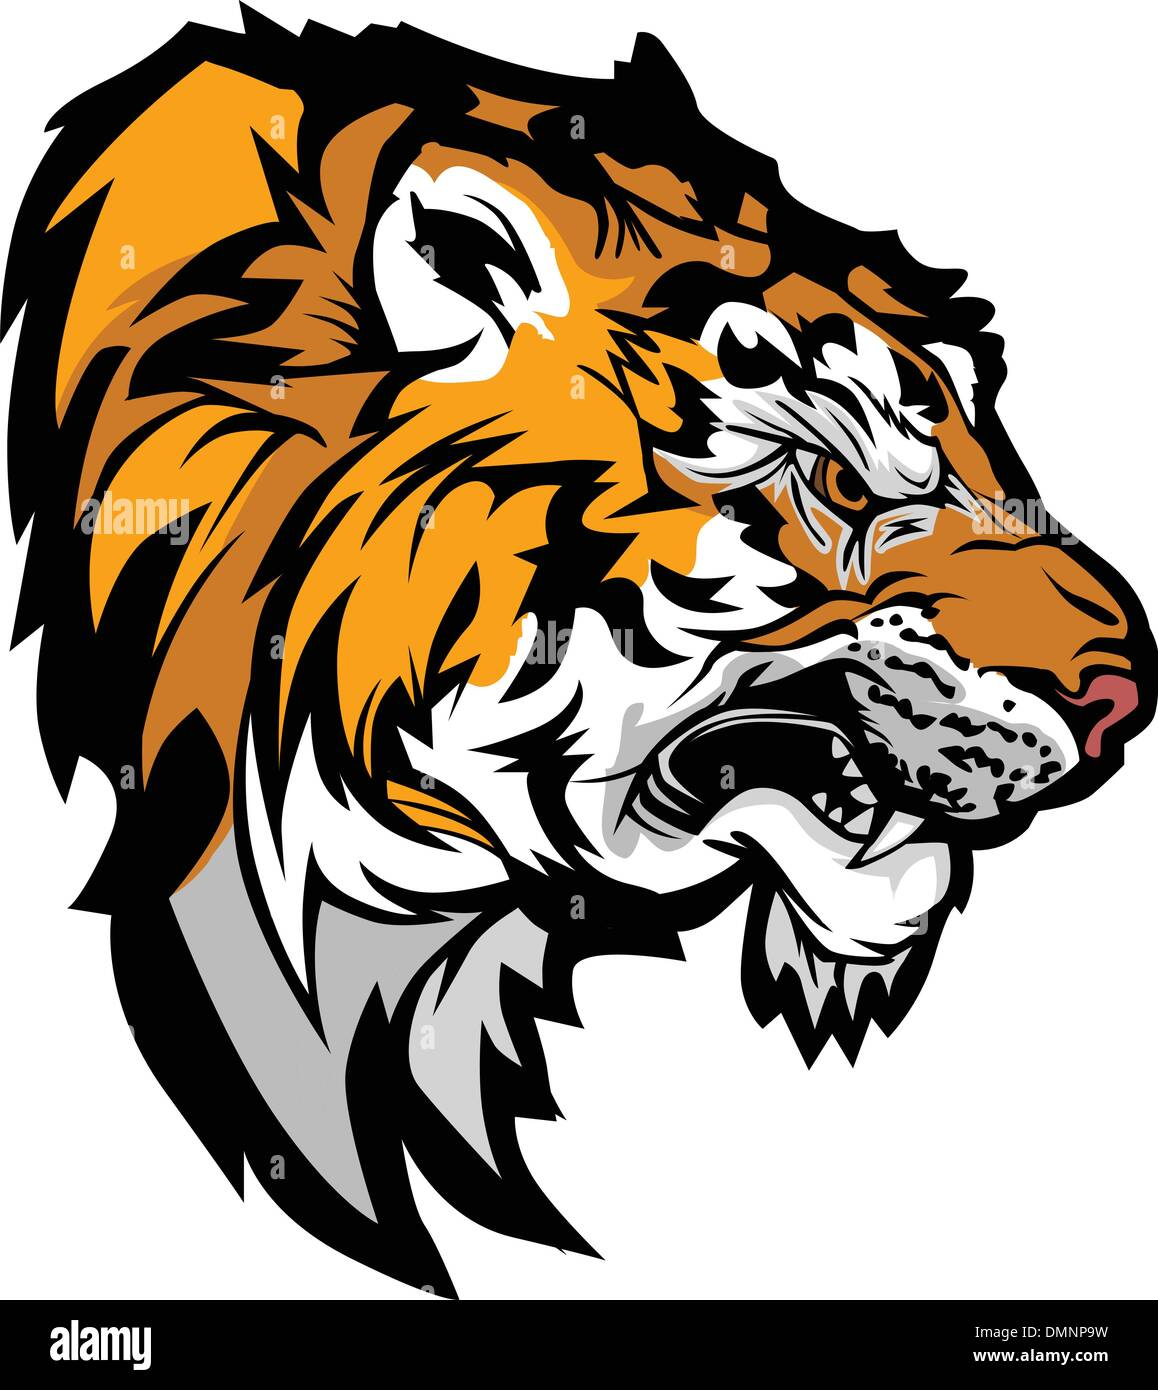 Tiger Head Profile Graphic Mascot Illustration - Stock Image